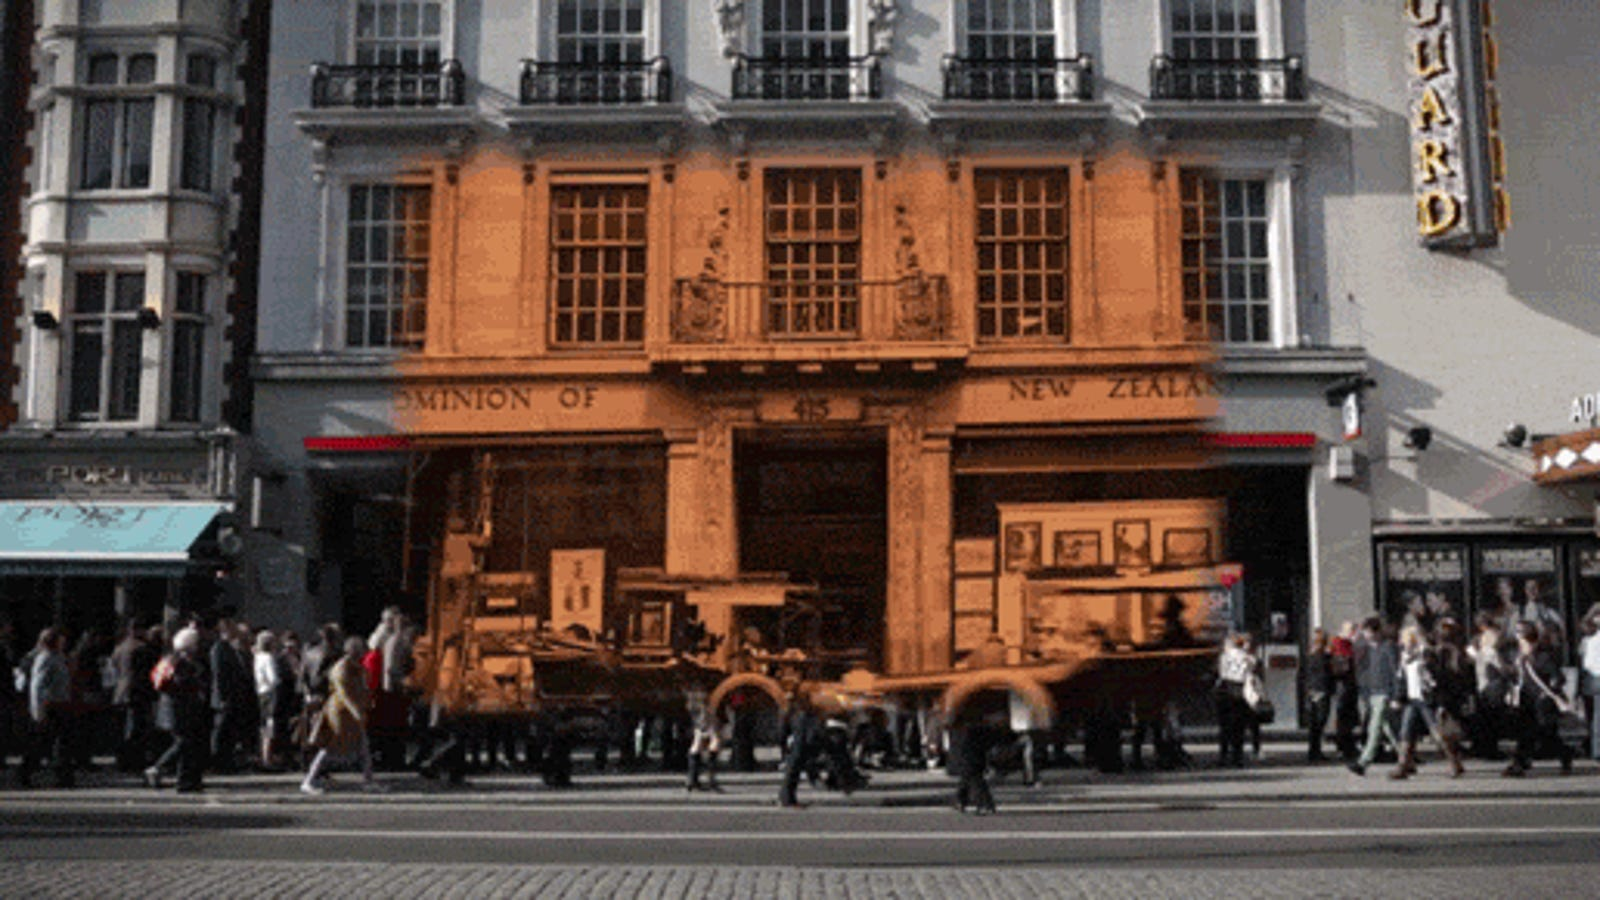 Watch London in 1924 & 2014 get combined into one time traveling video